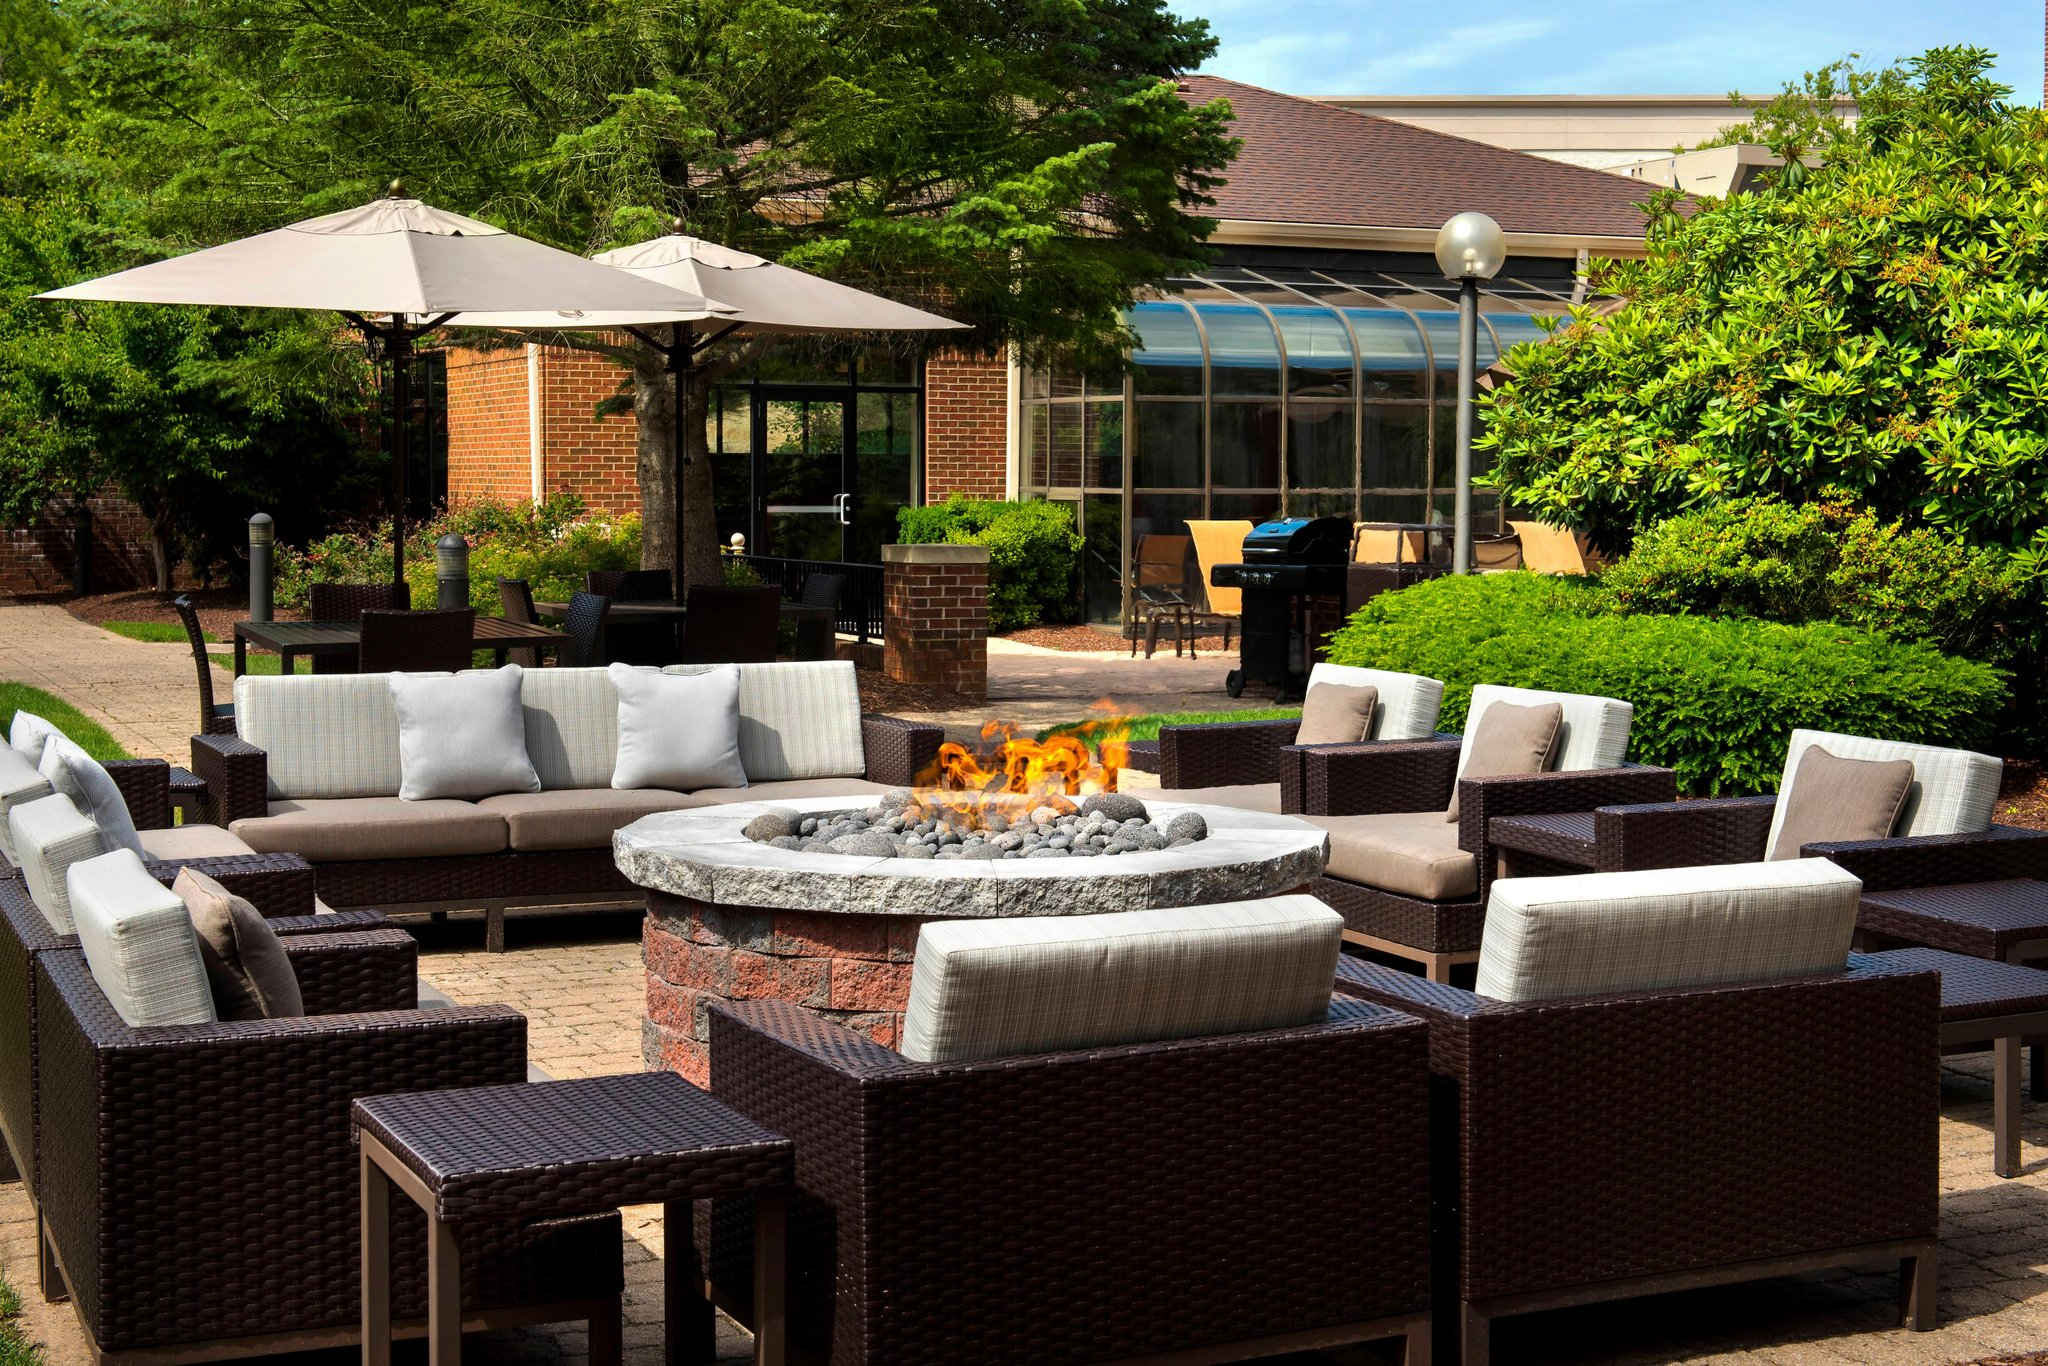 Courtyard by Marriott Boston Milford